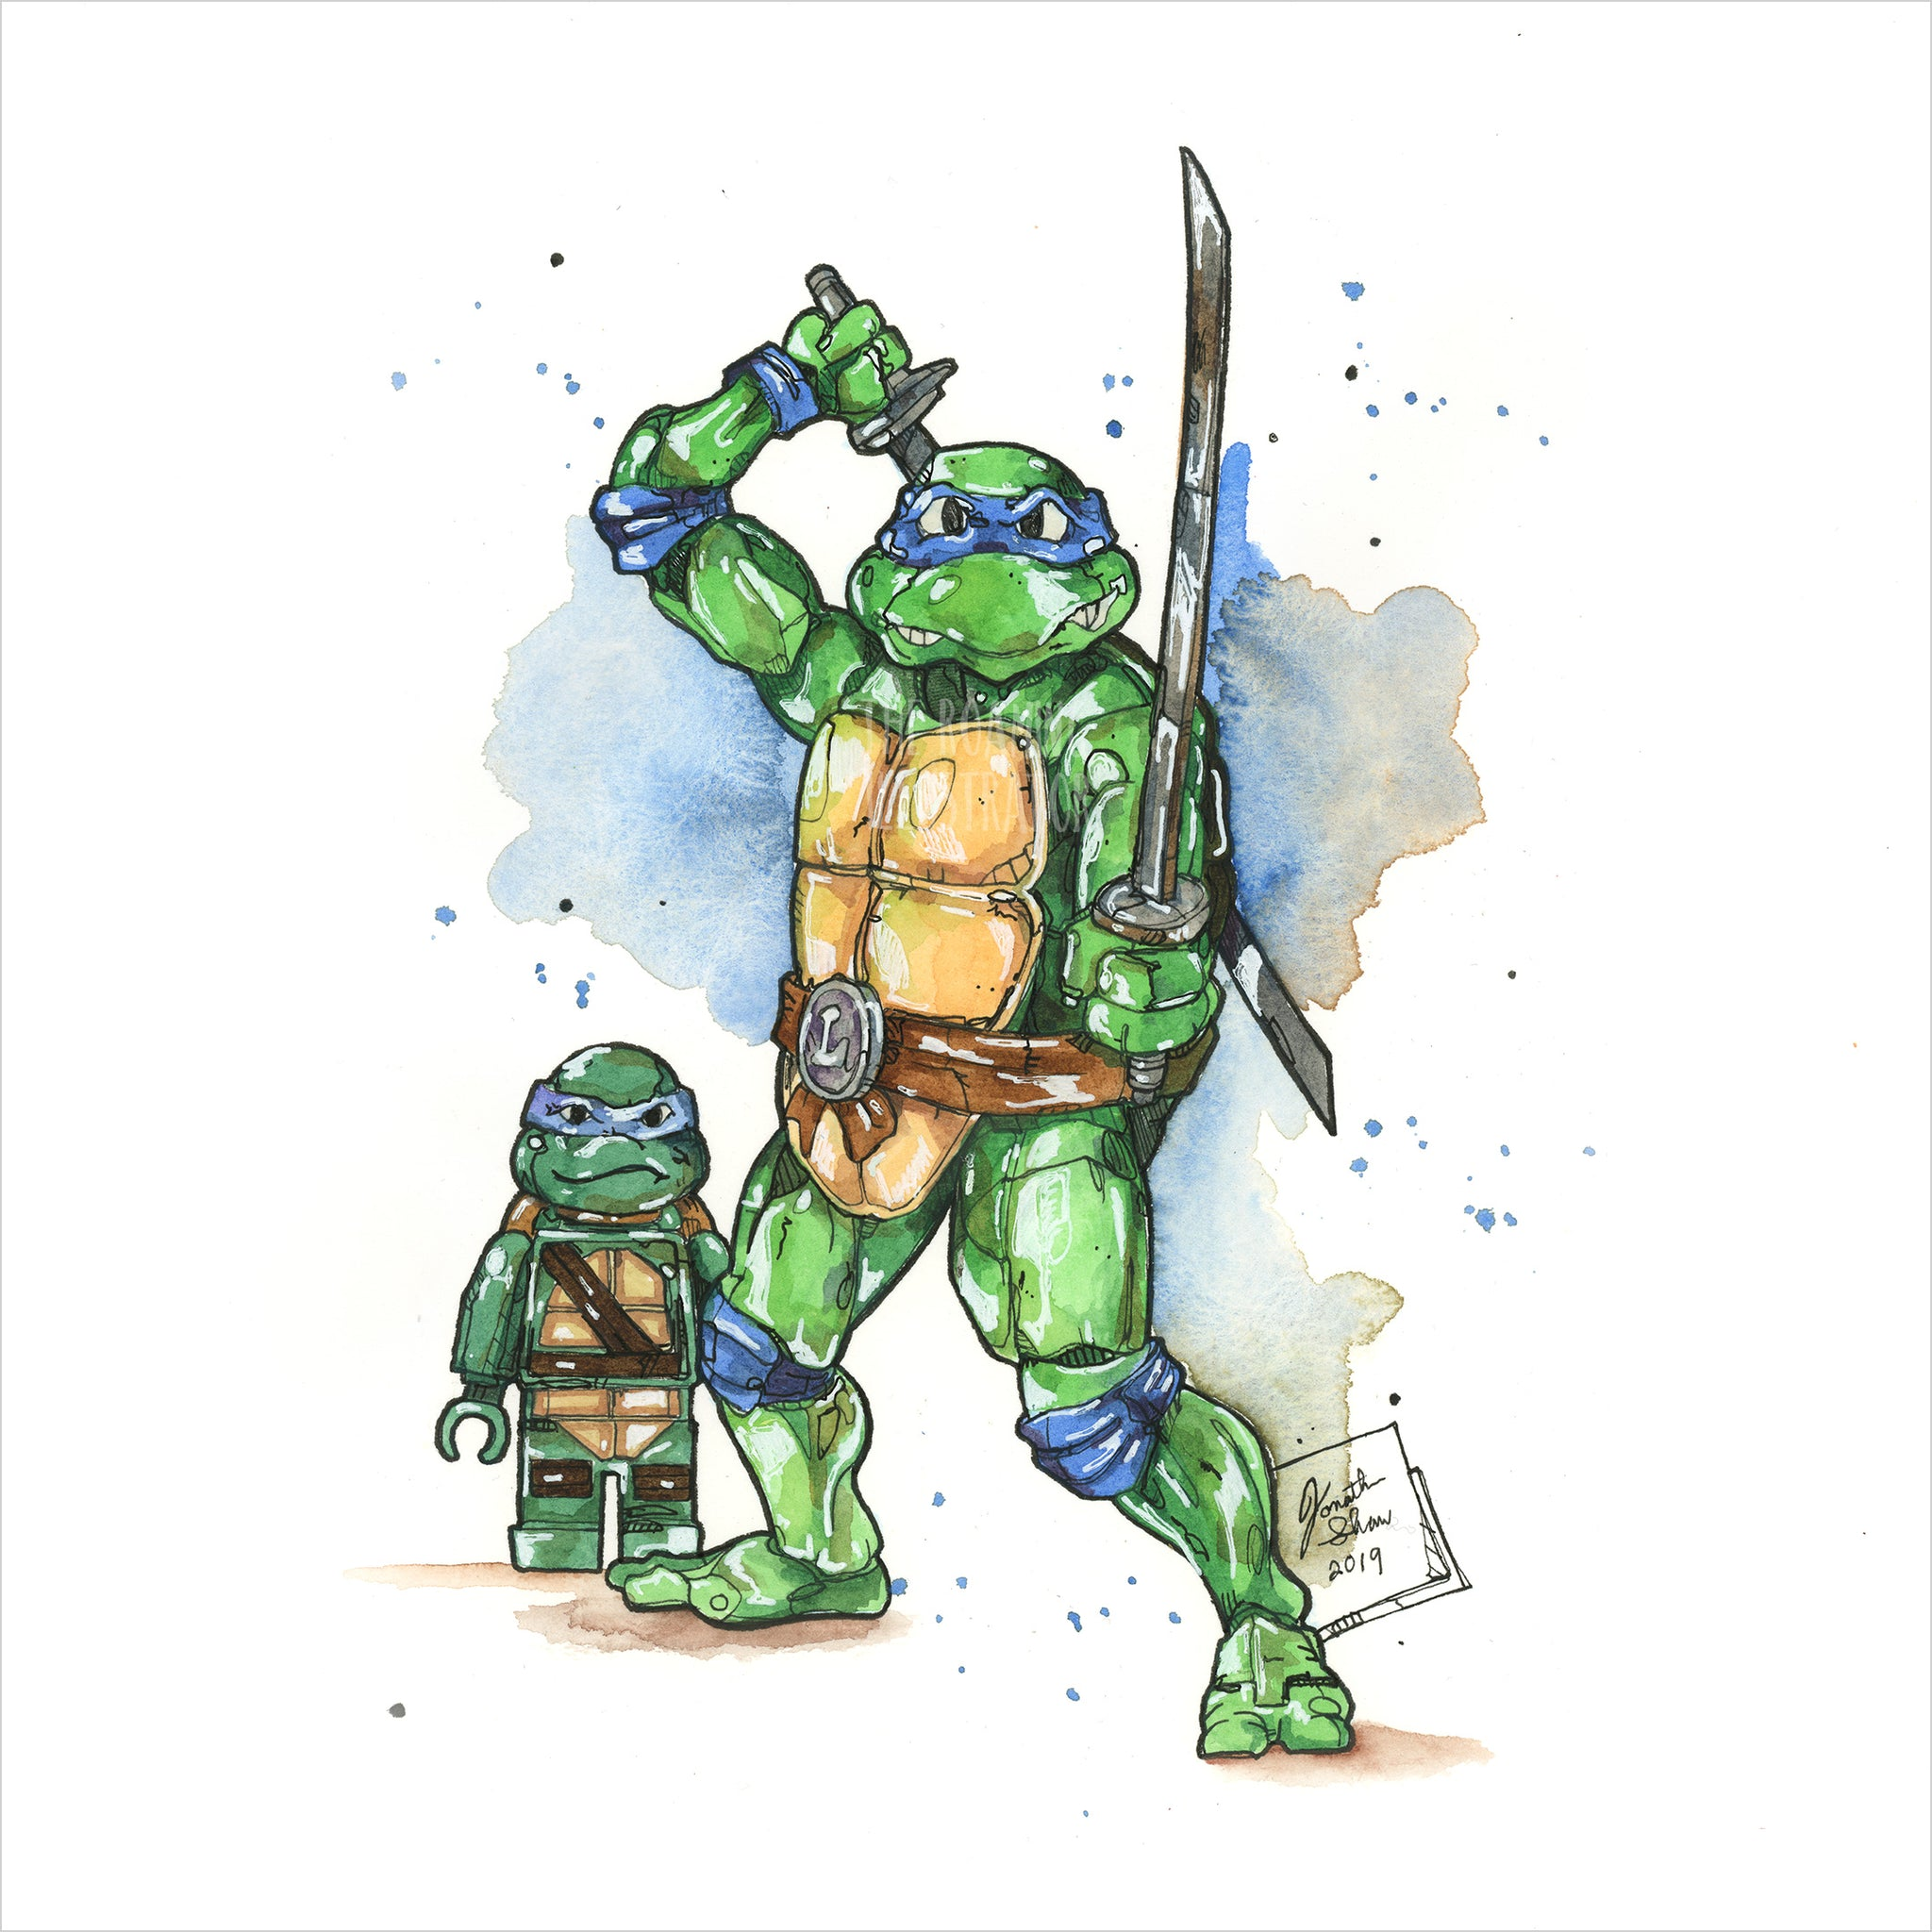 """Ninja Turtle Toys"" - Original 8x10 Illustration (SOLD)"